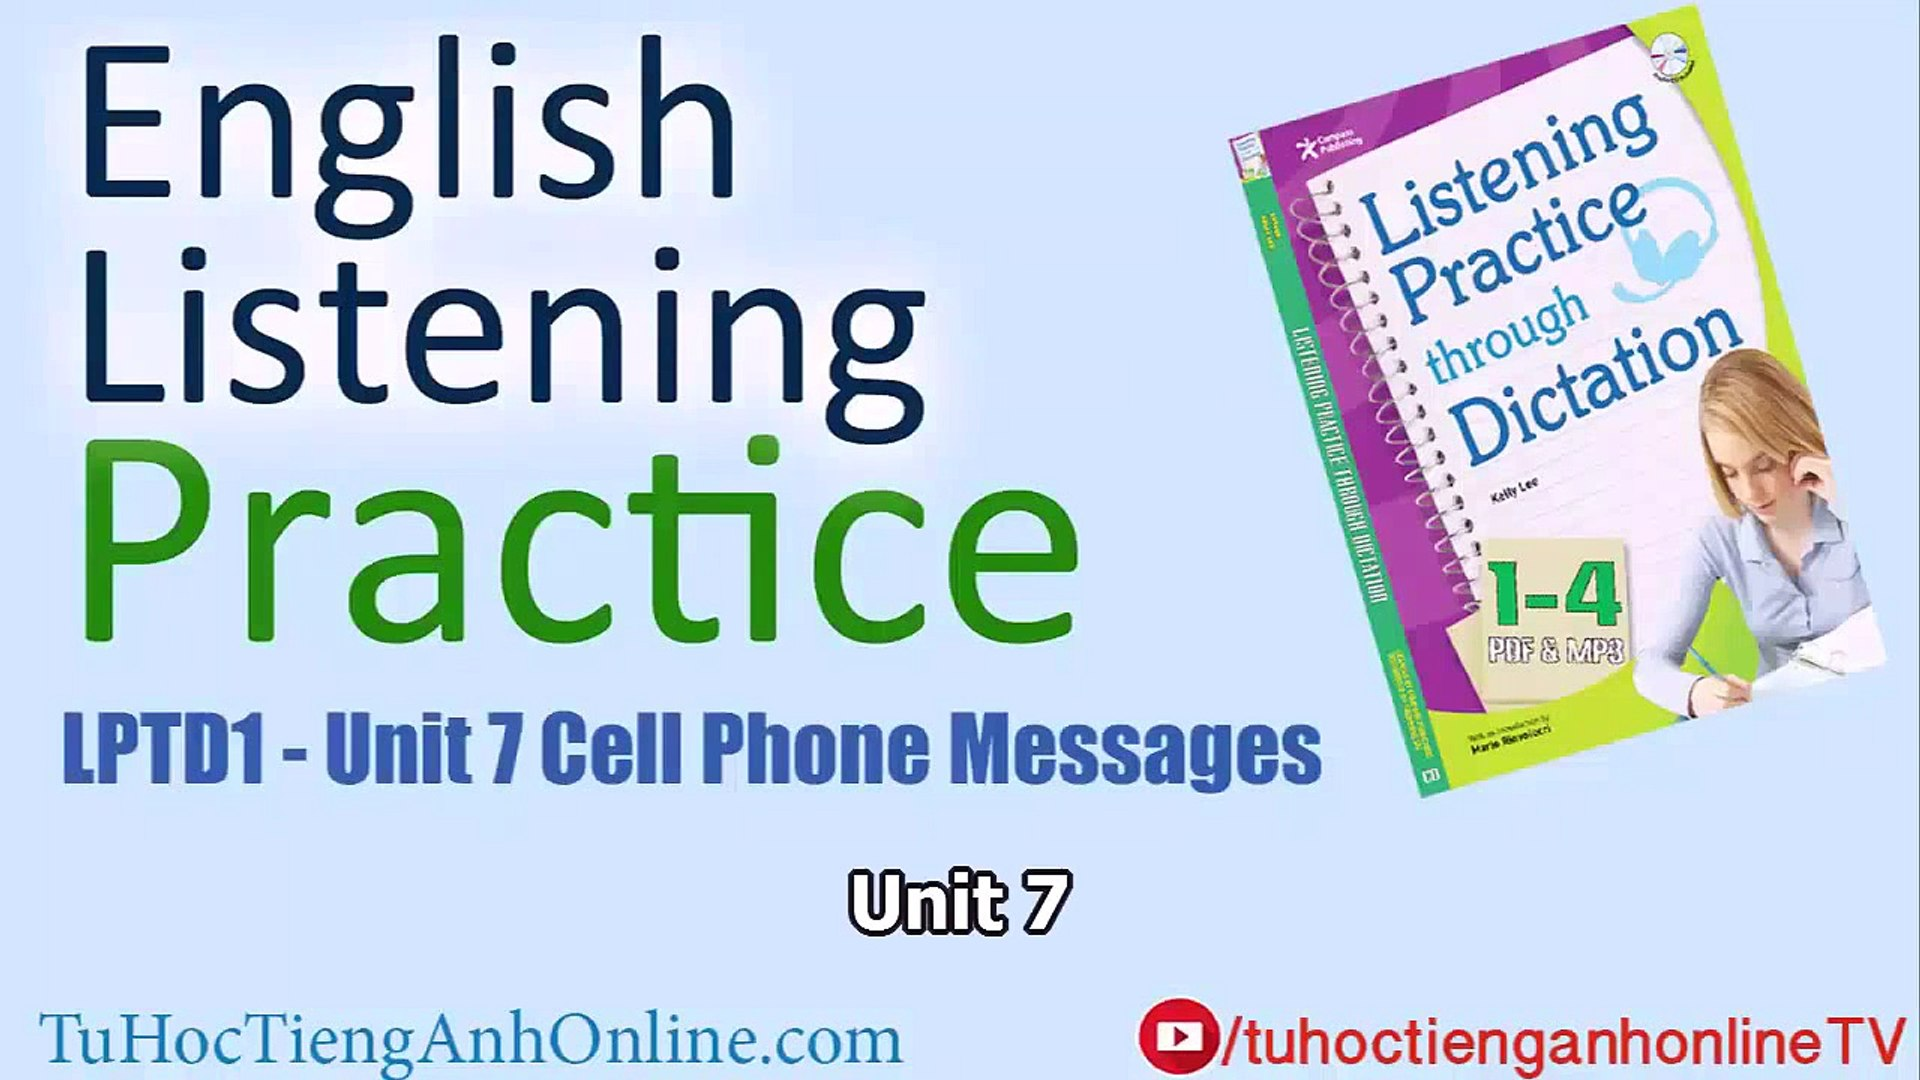 English Listening Practice Unit 7 - Cell Phone Messages